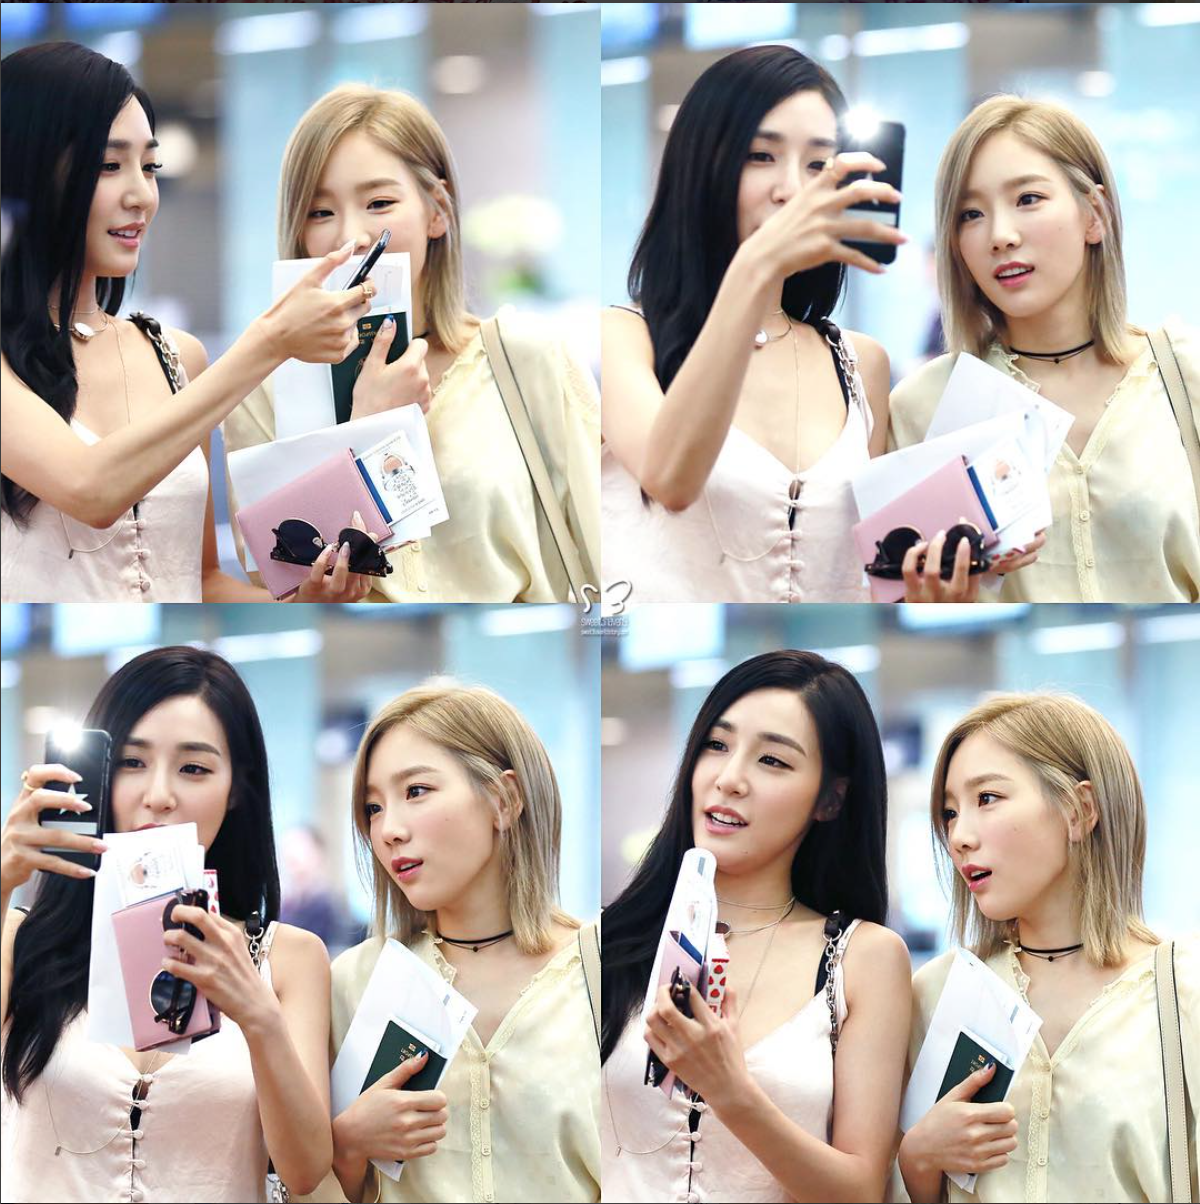 TaeNy in the airport